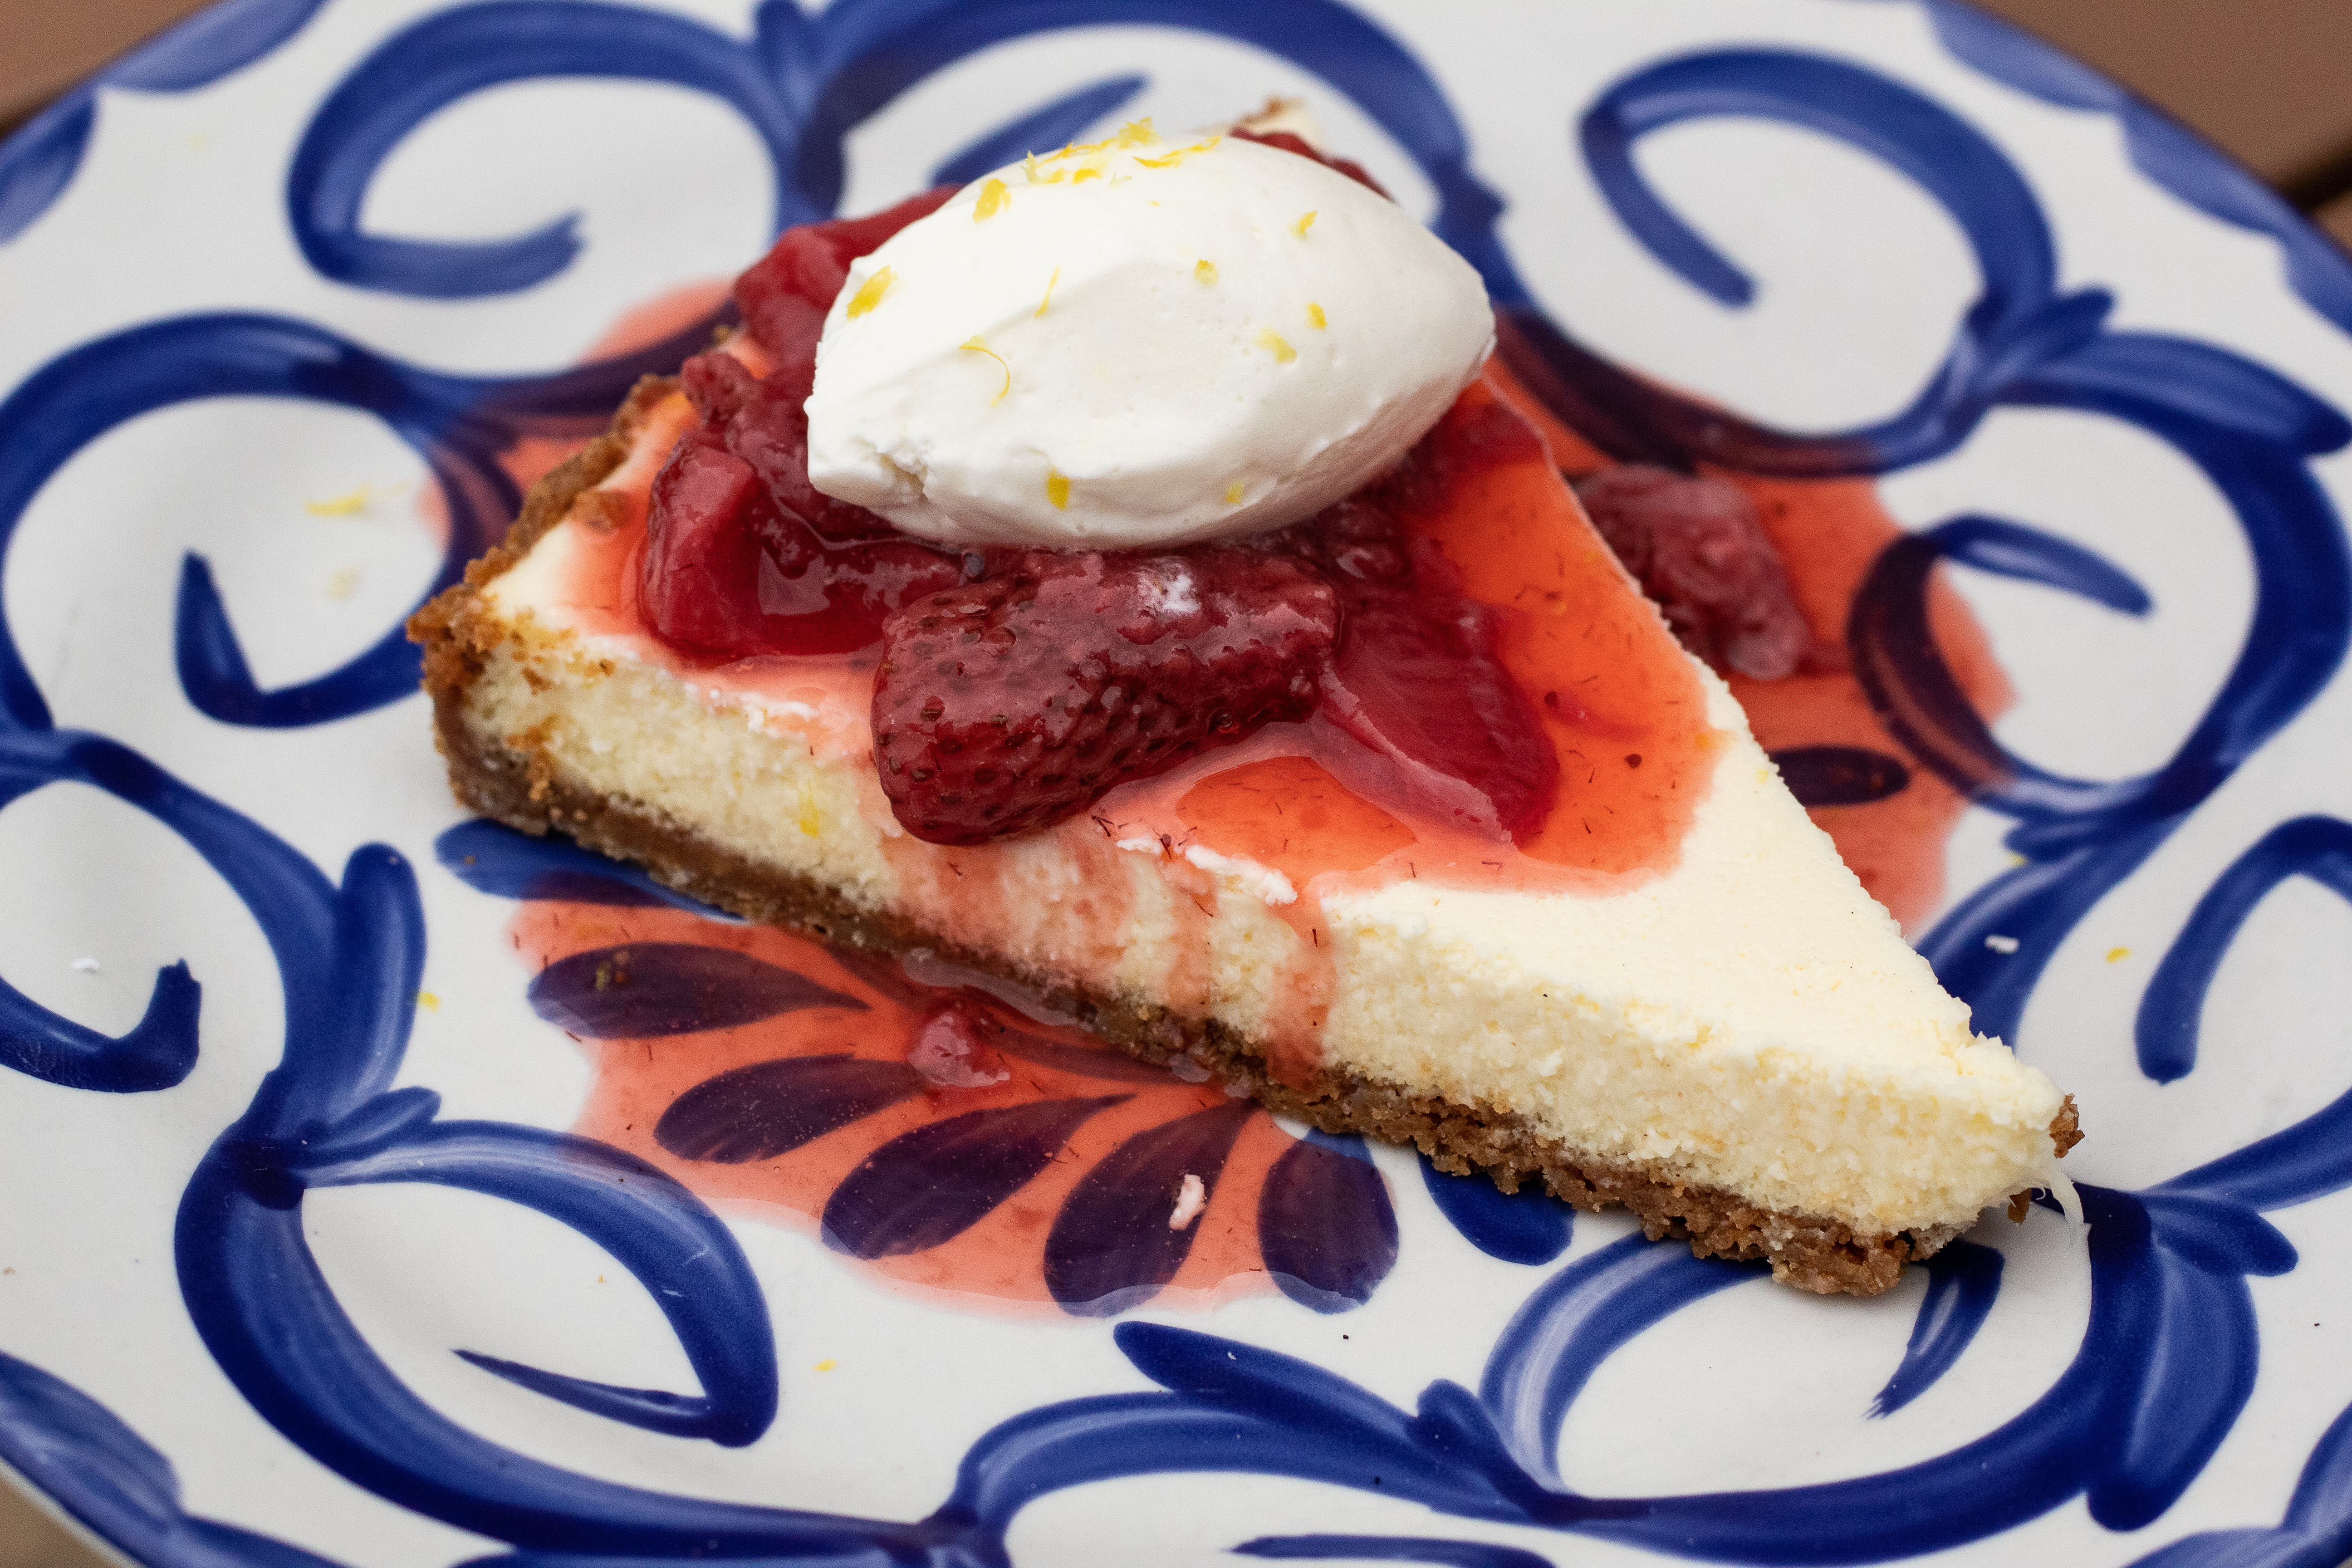 <p>At the All Purpose Capitol Riverfront, make your way to the patio or the roof deck and end your meal with the Brooklyn-style cheesecake with graham cracker crust, strawberry conserva, whipped cream and lemon zest. (Image: Courtesy All Purpose)</p>